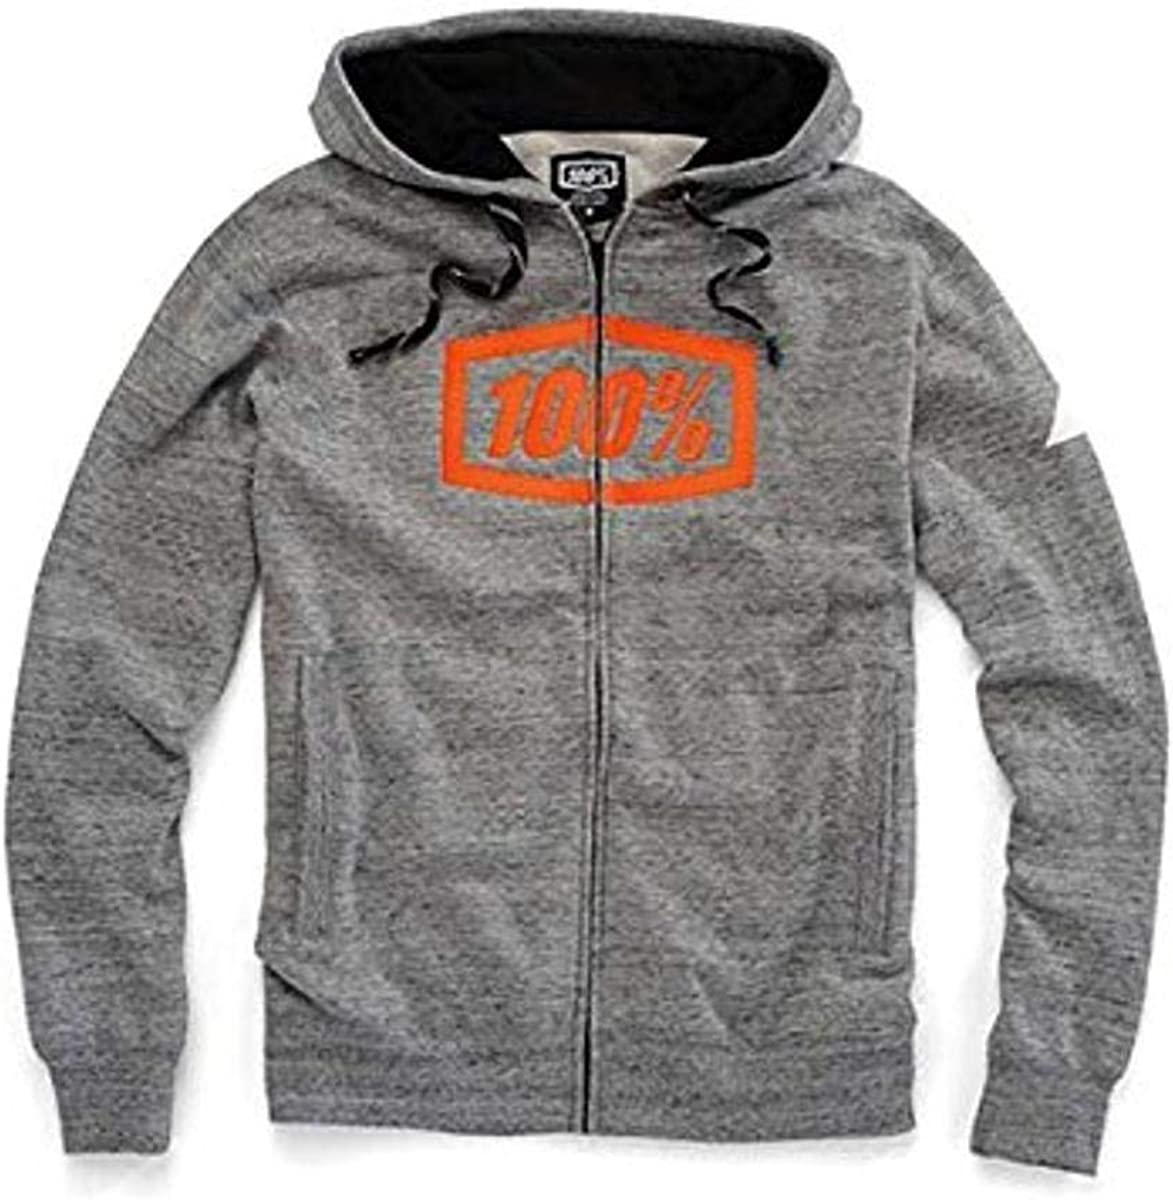 100% Colorado Springs Mall Ranking integrated 1st place Unisex-Adult Syndicate Zip-Front Hoodie